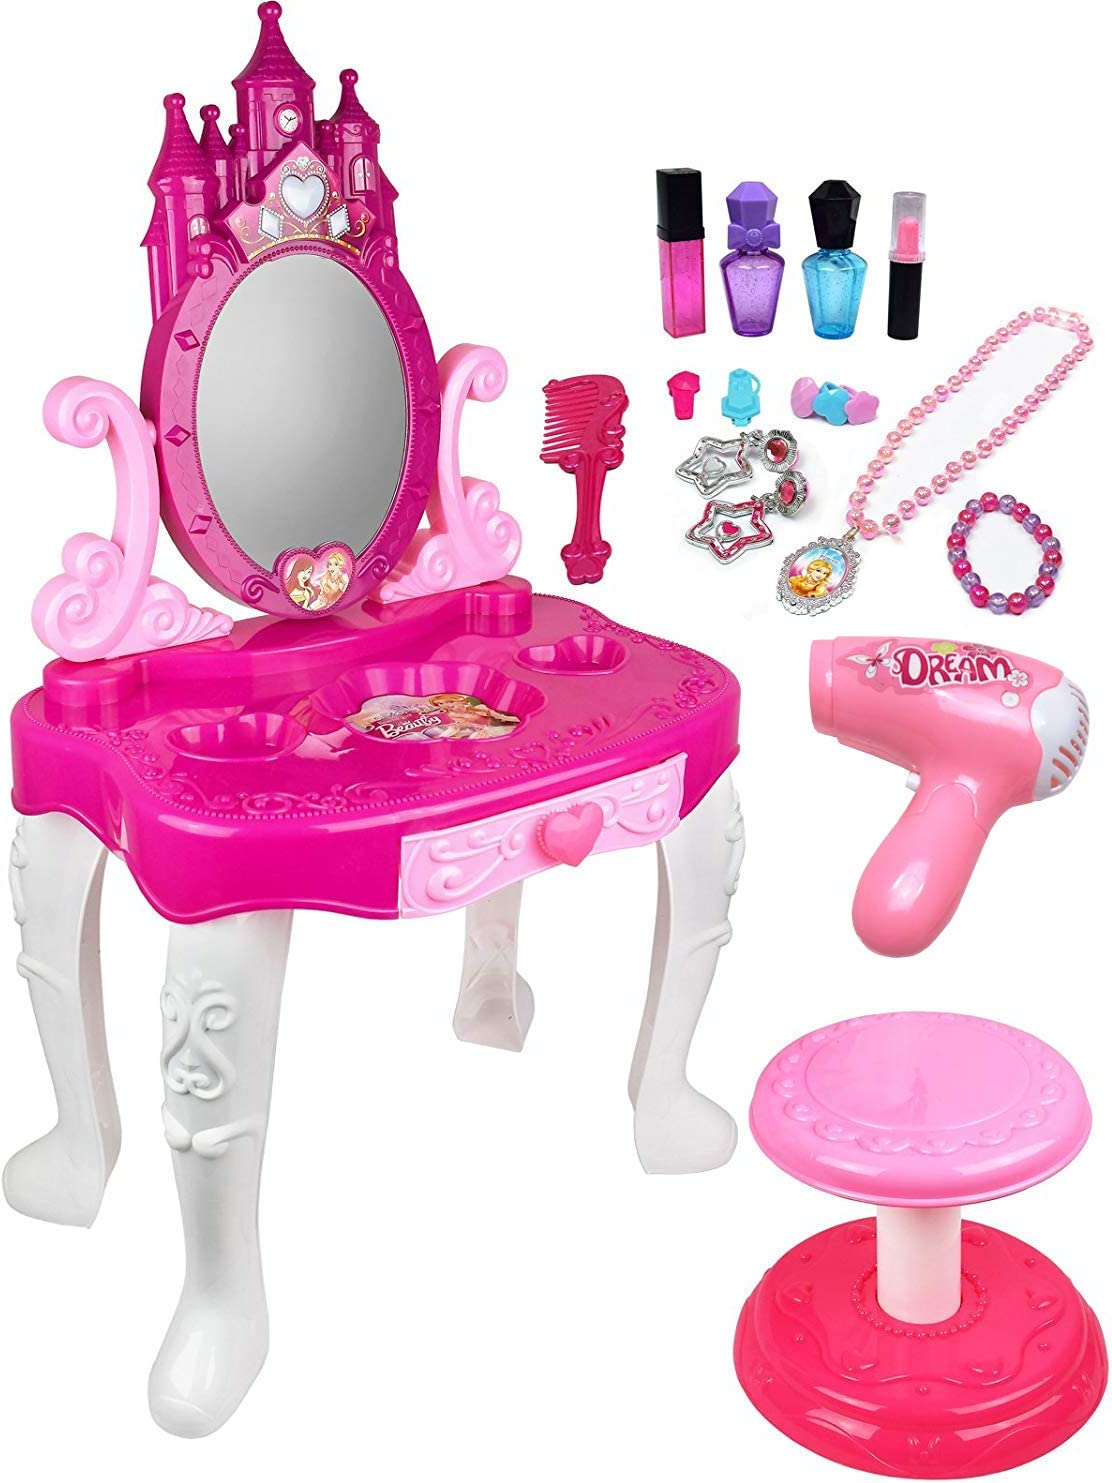 Cheap Little Girl Vanity Set Cheaper Than Retail Price Buy Clothing Accessories And Lifestyle Products For Women Men